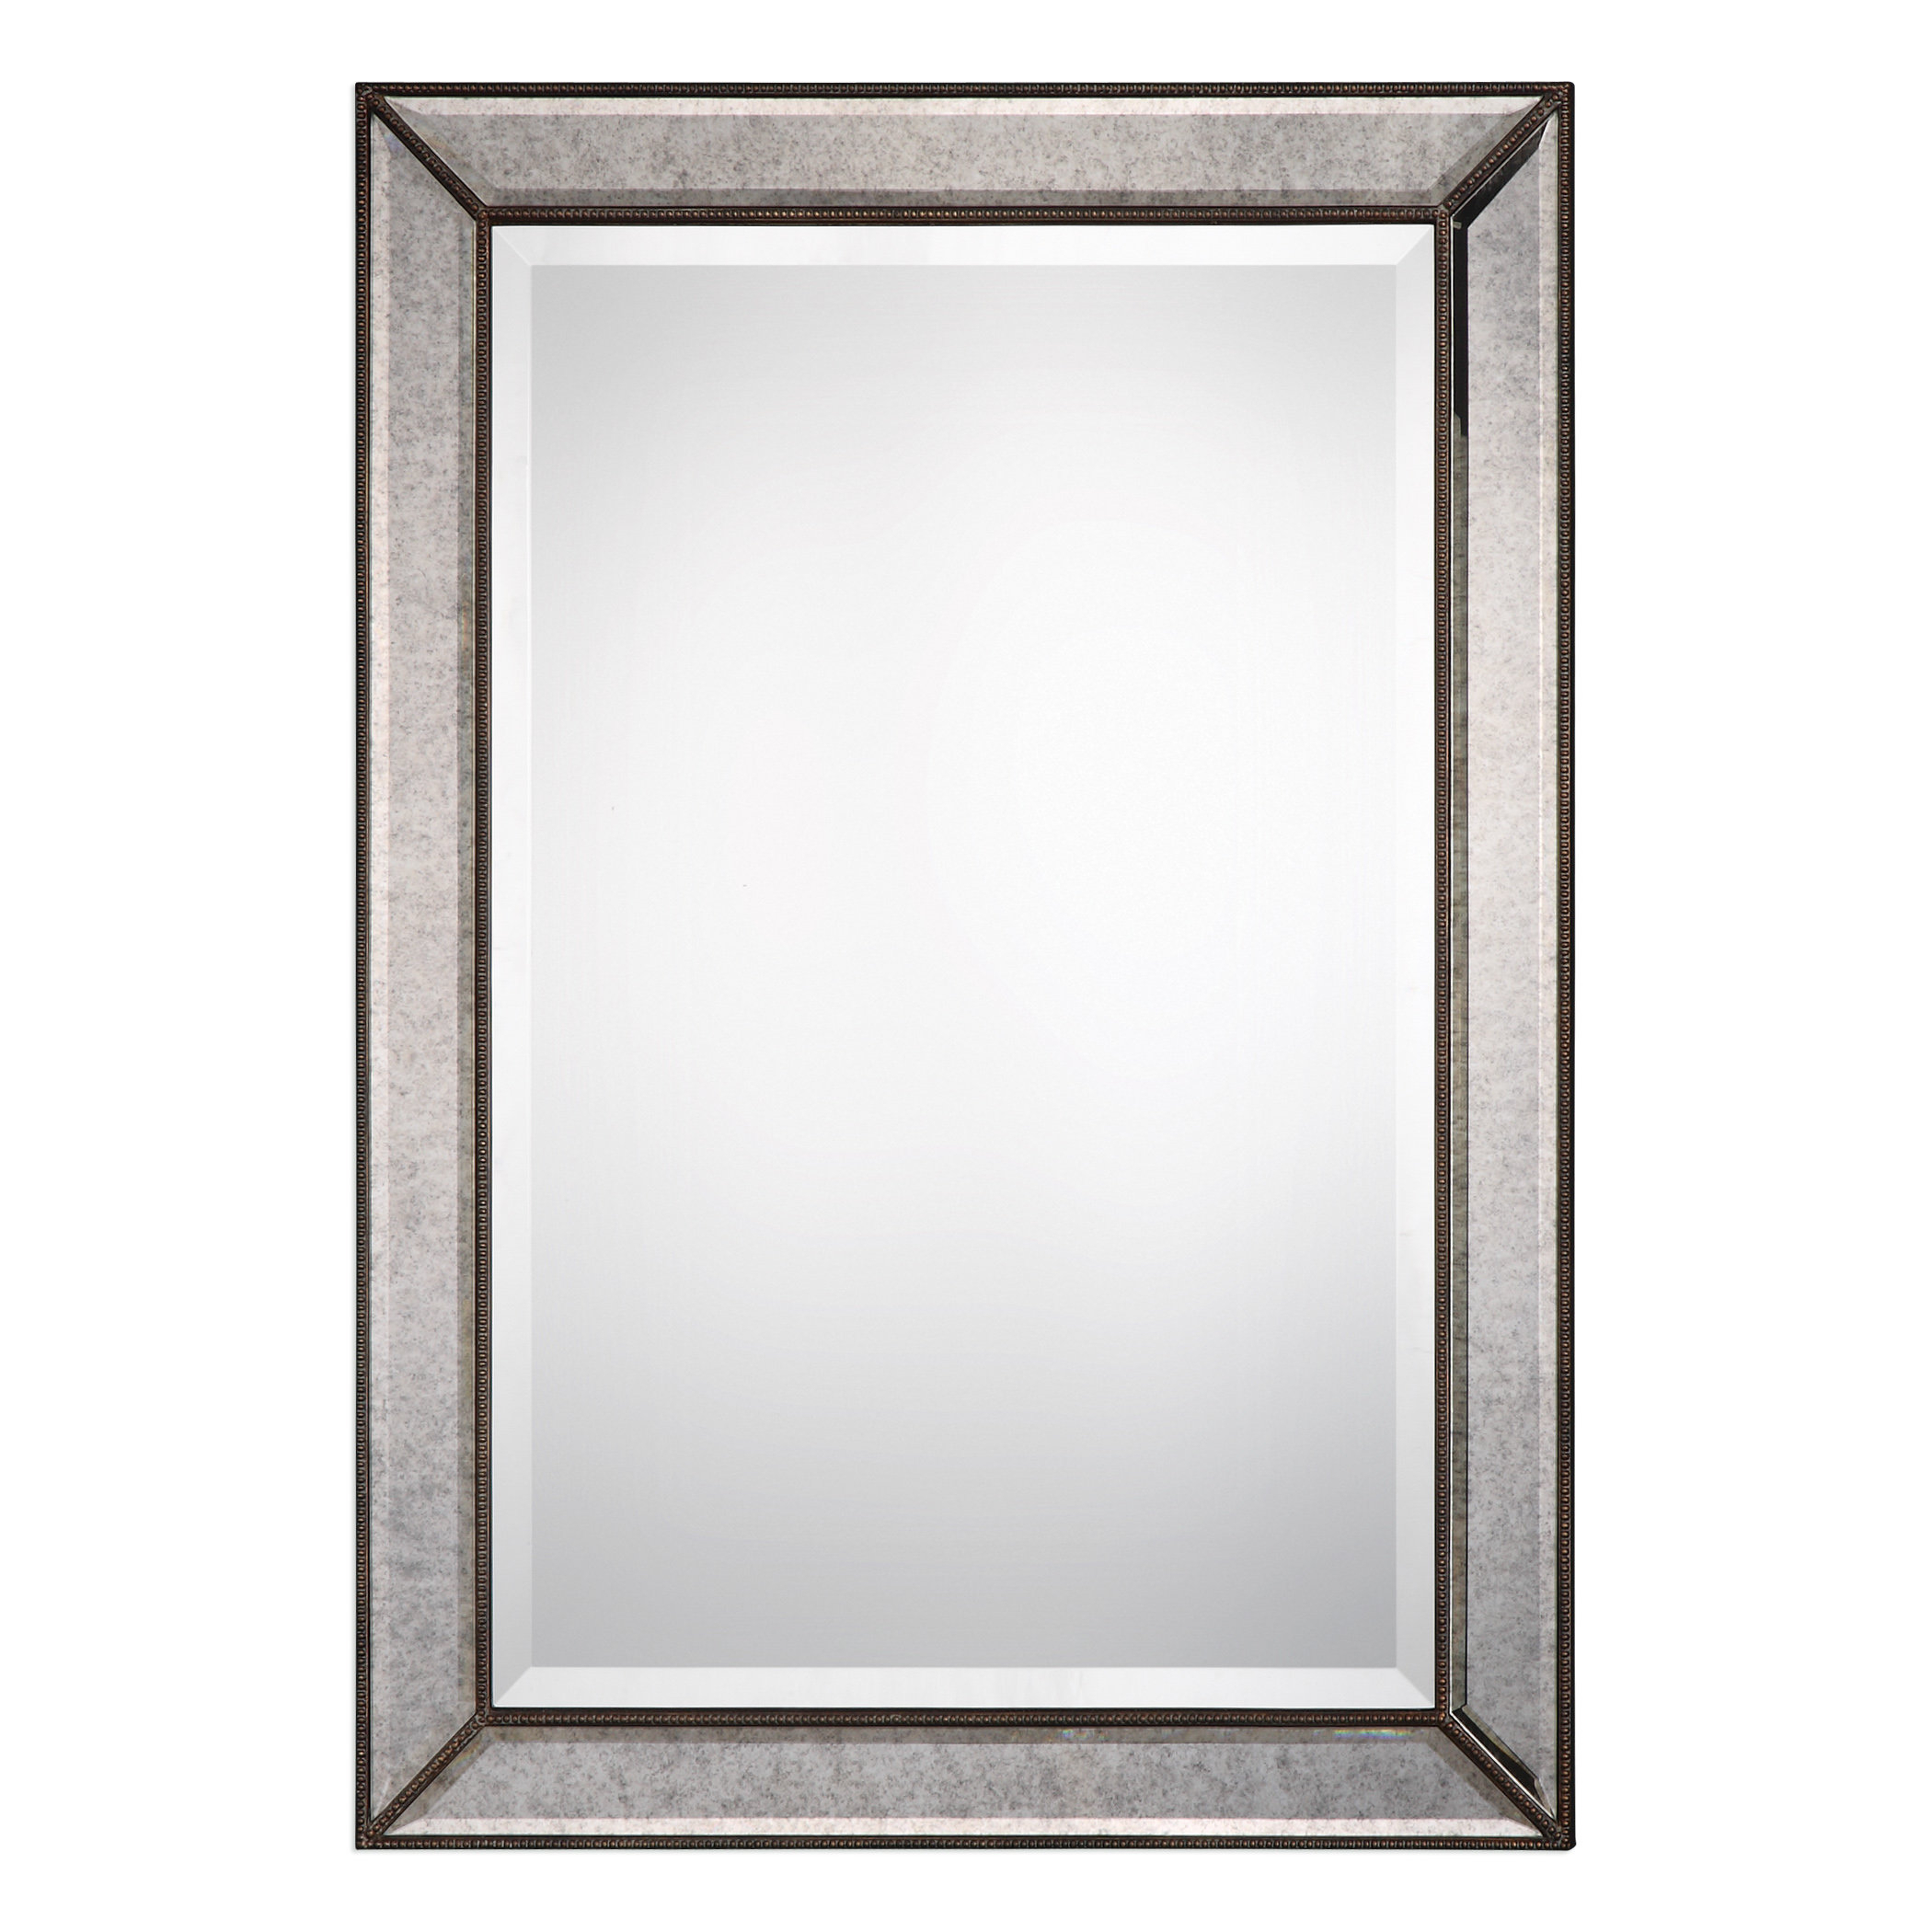 Marsha Traditional Rectangle Mdf/mirror Framed Accent Mirror Intended For Maude Accent Mirrors (Image 8 of 20)